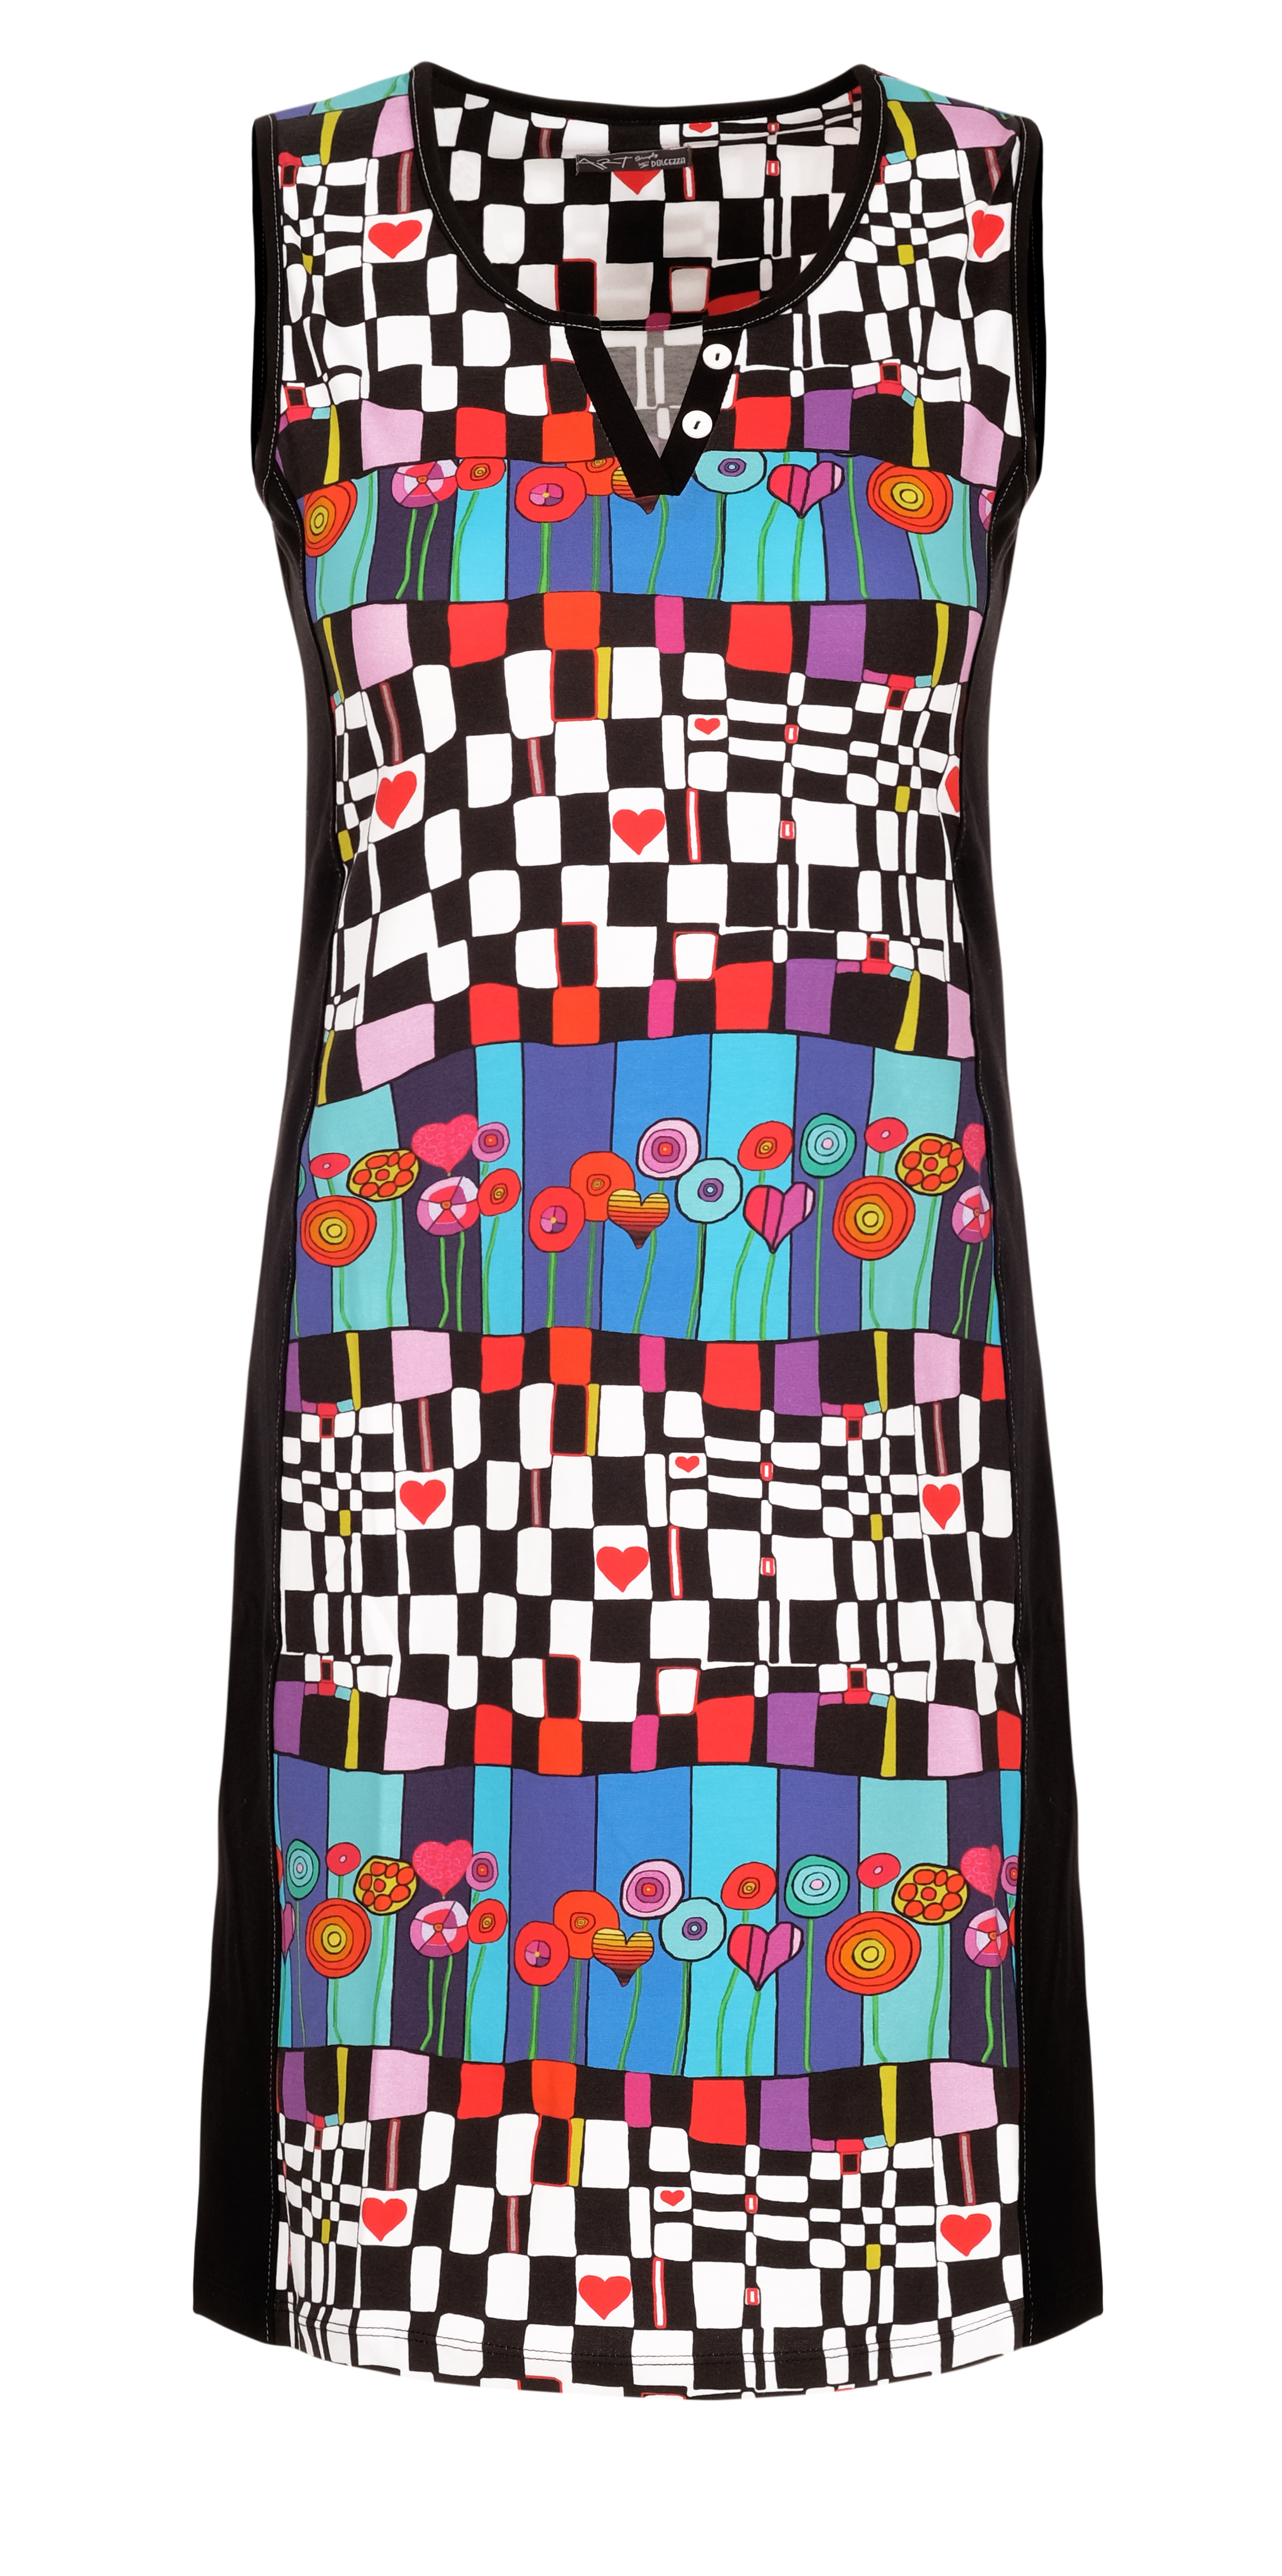 Simply Art Dolcezza: Lollipops Of Happiness Abstract Art Dress/Tunic (2 Left!) Dolcezza_SimplyArt_21610_N